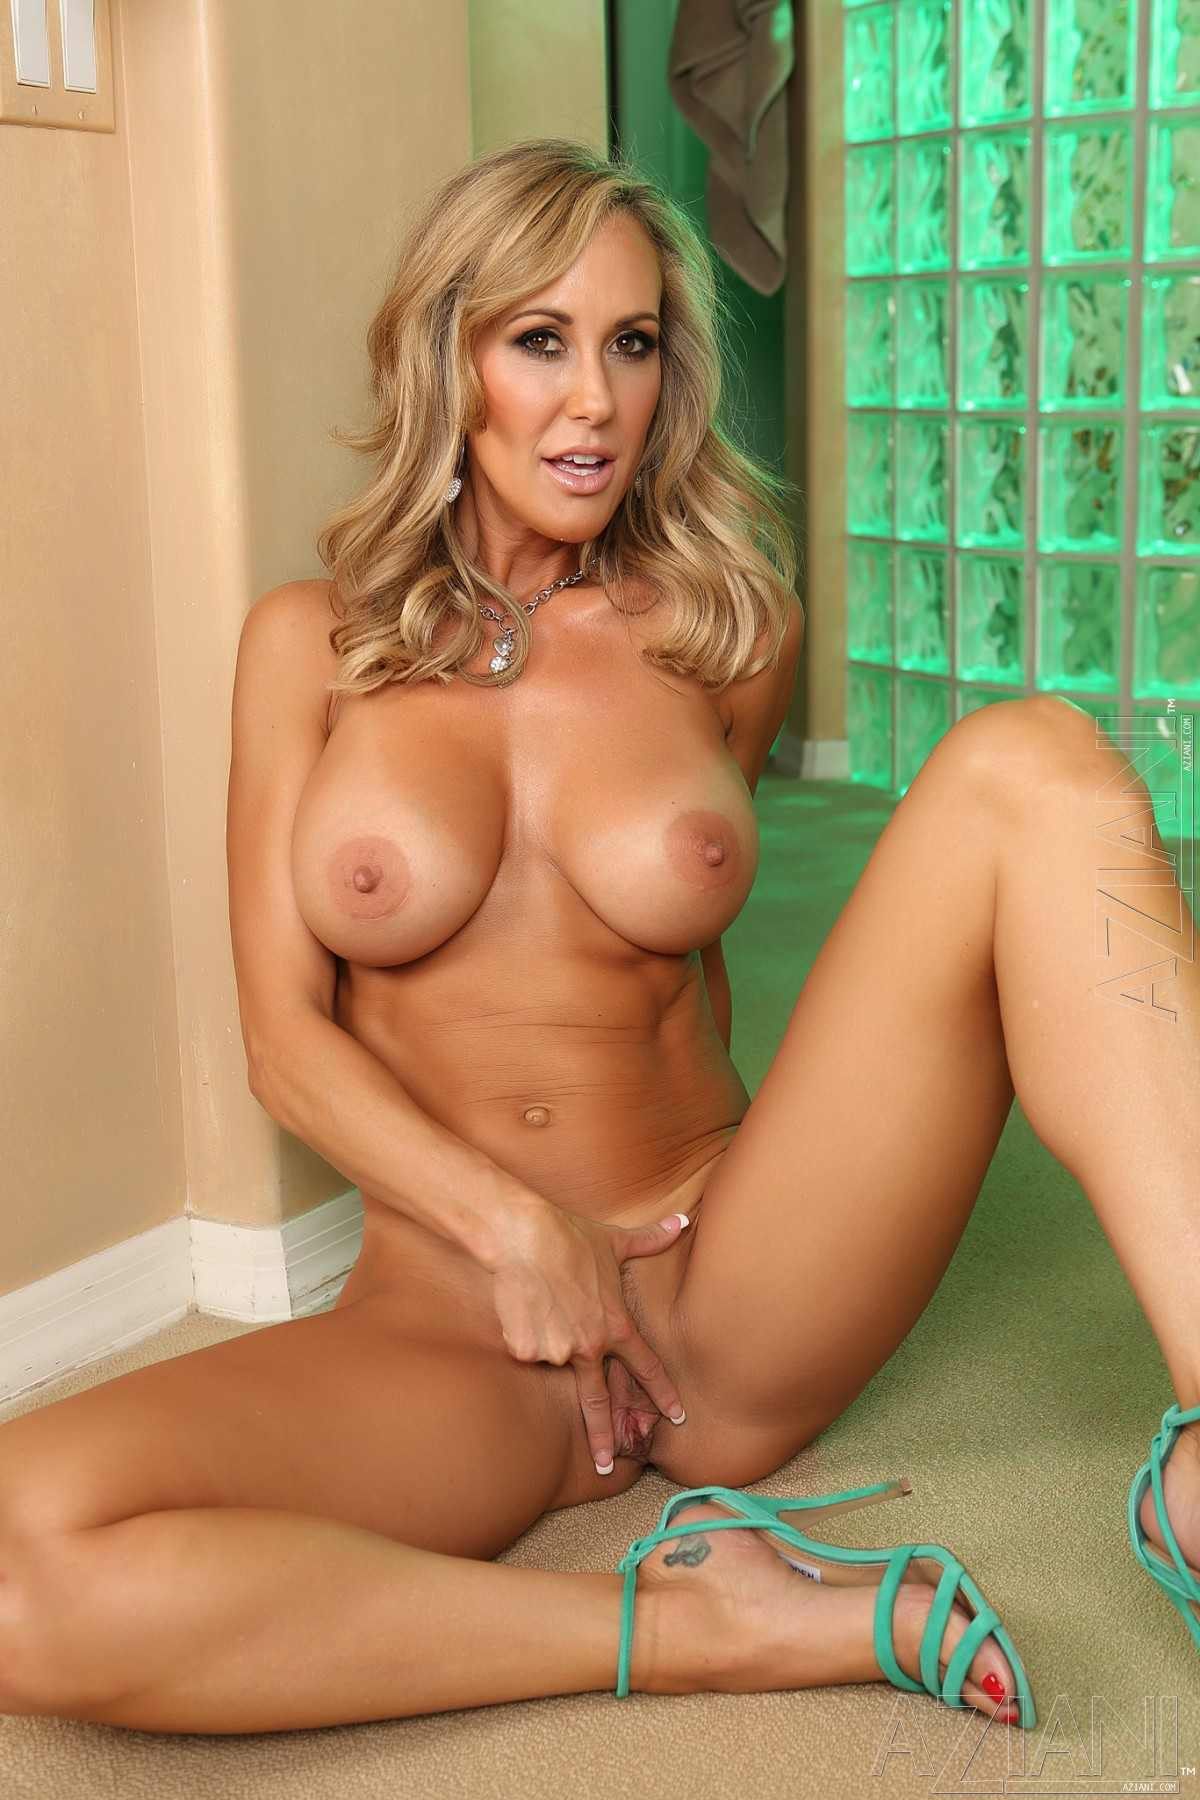 Brandi love amateur hardcore ass worship